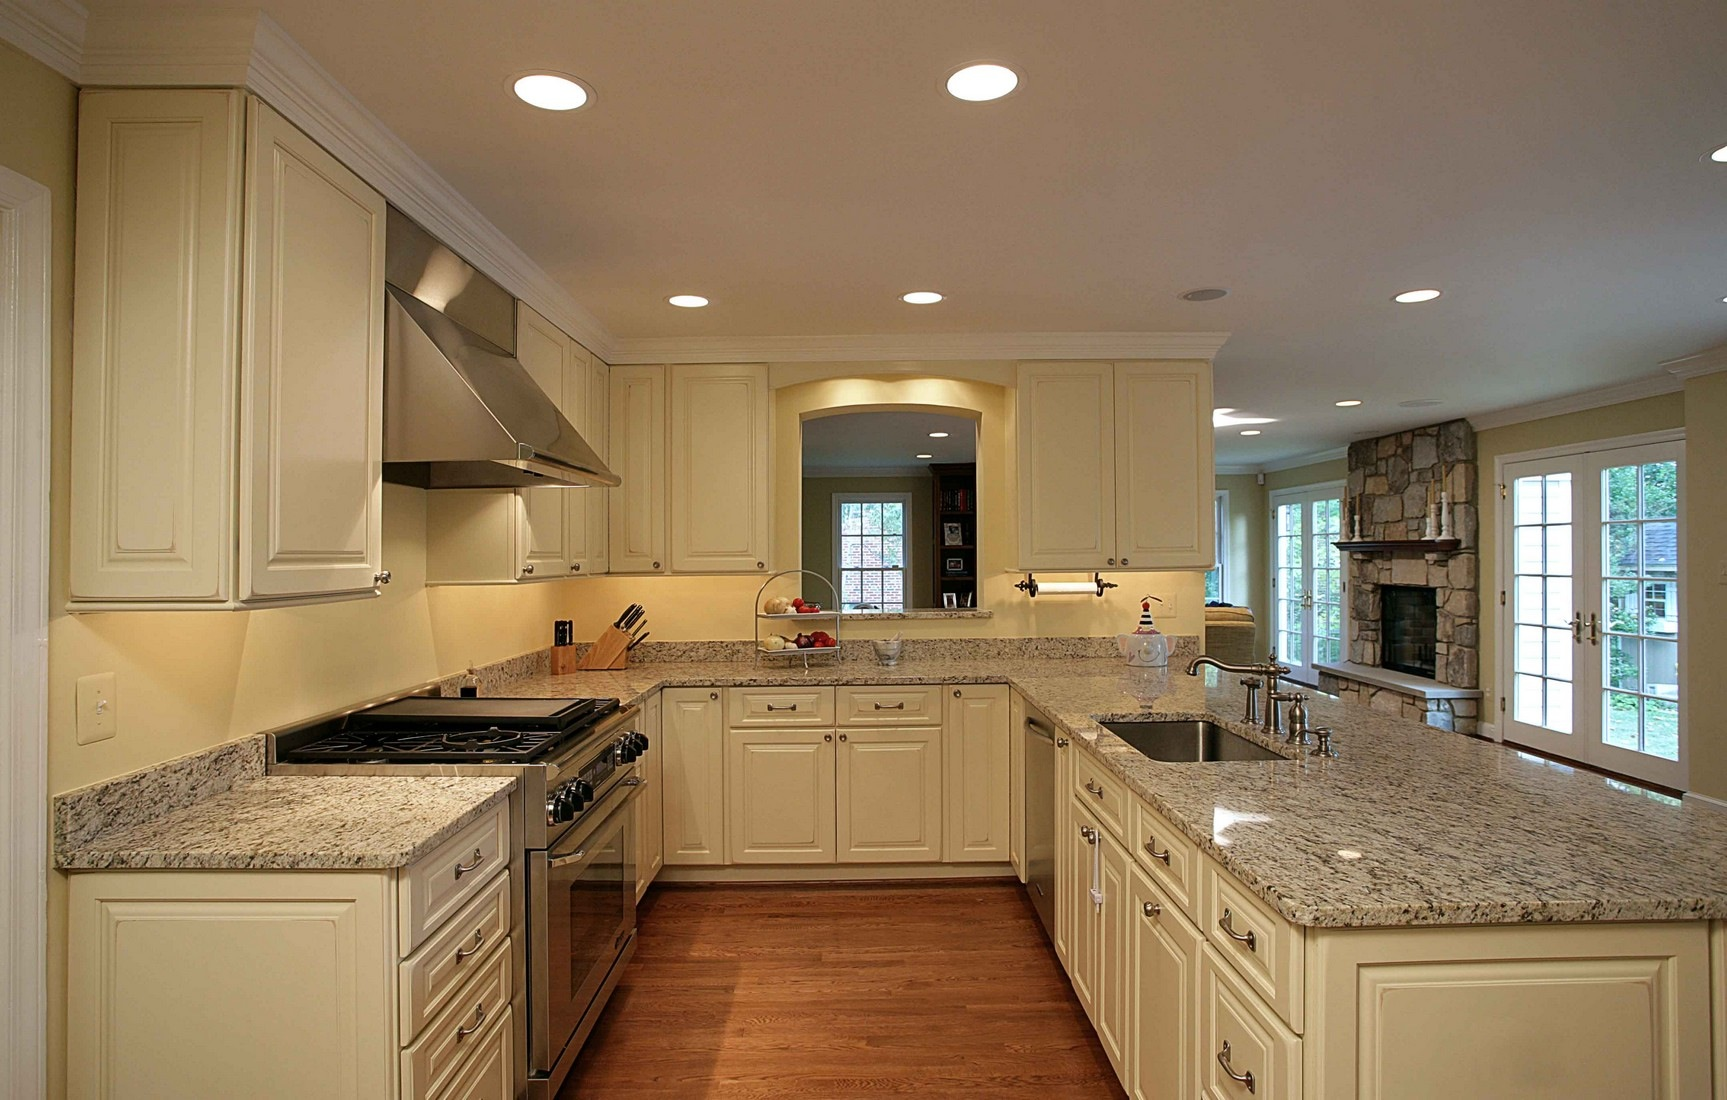 Kitchen Remodeling In Maryland Exterior Interior Mesmerizing Chevy Chase Maryland Home Remodeling Decorating Inspiration